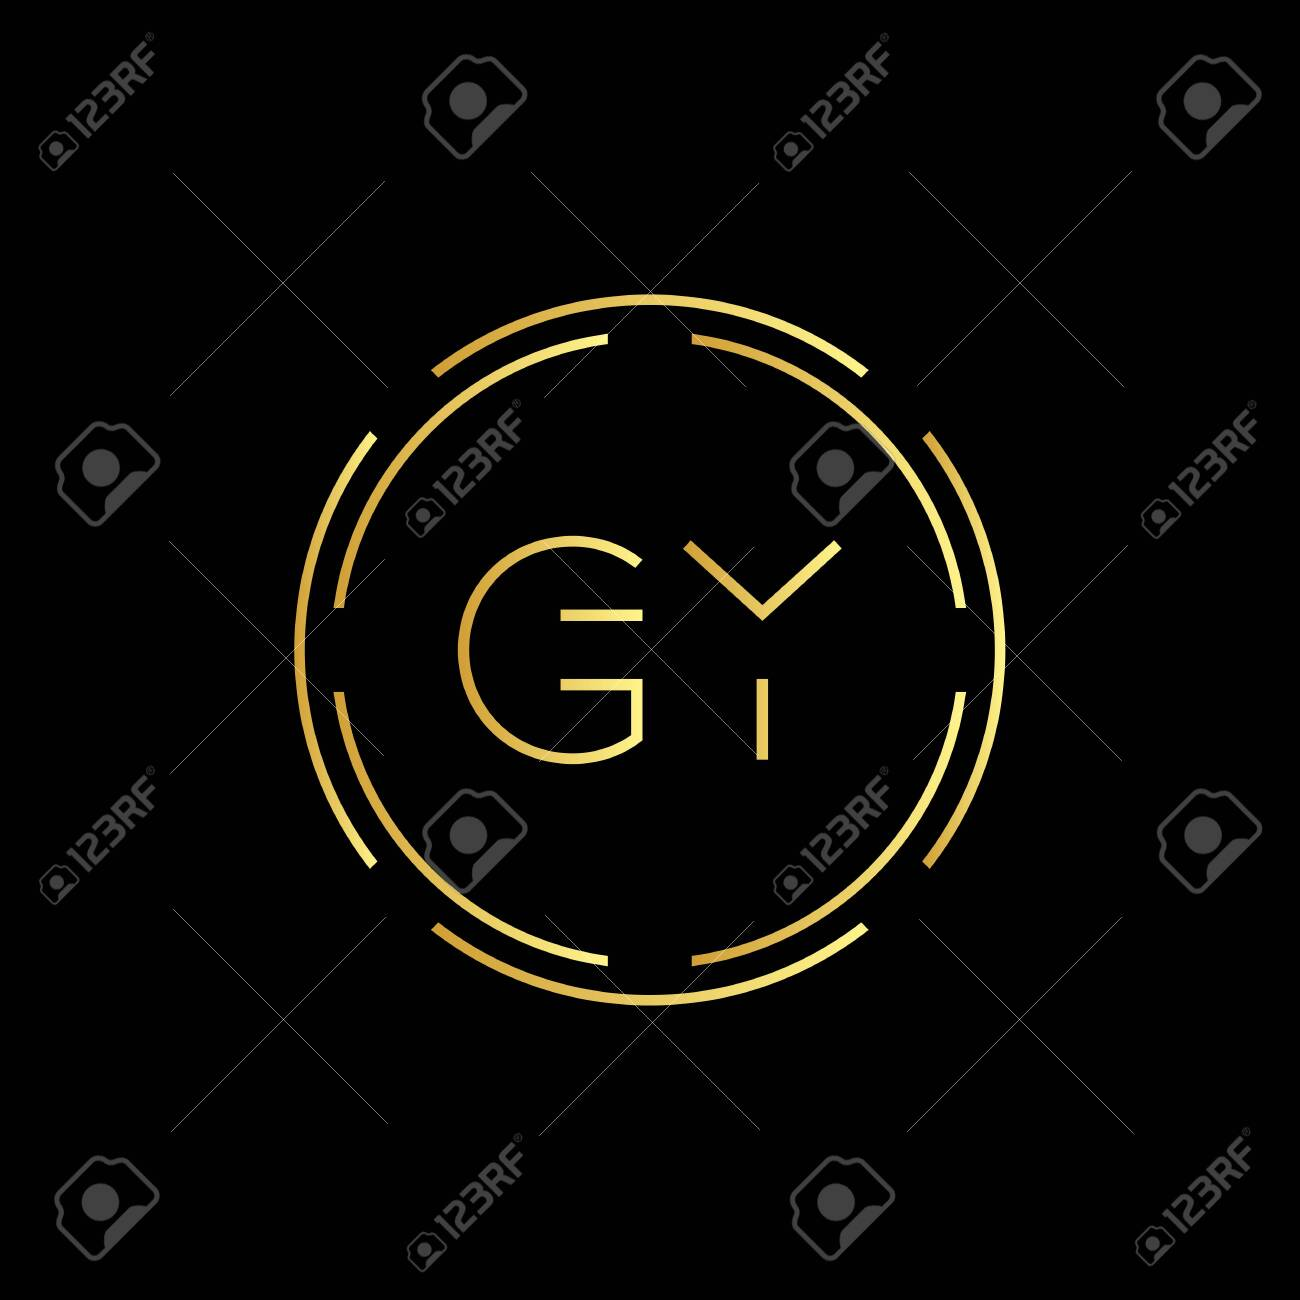 Initial Letter GY Creative Logo Design vector Template. Digital Luxury Letter GY logo Design - 146257528